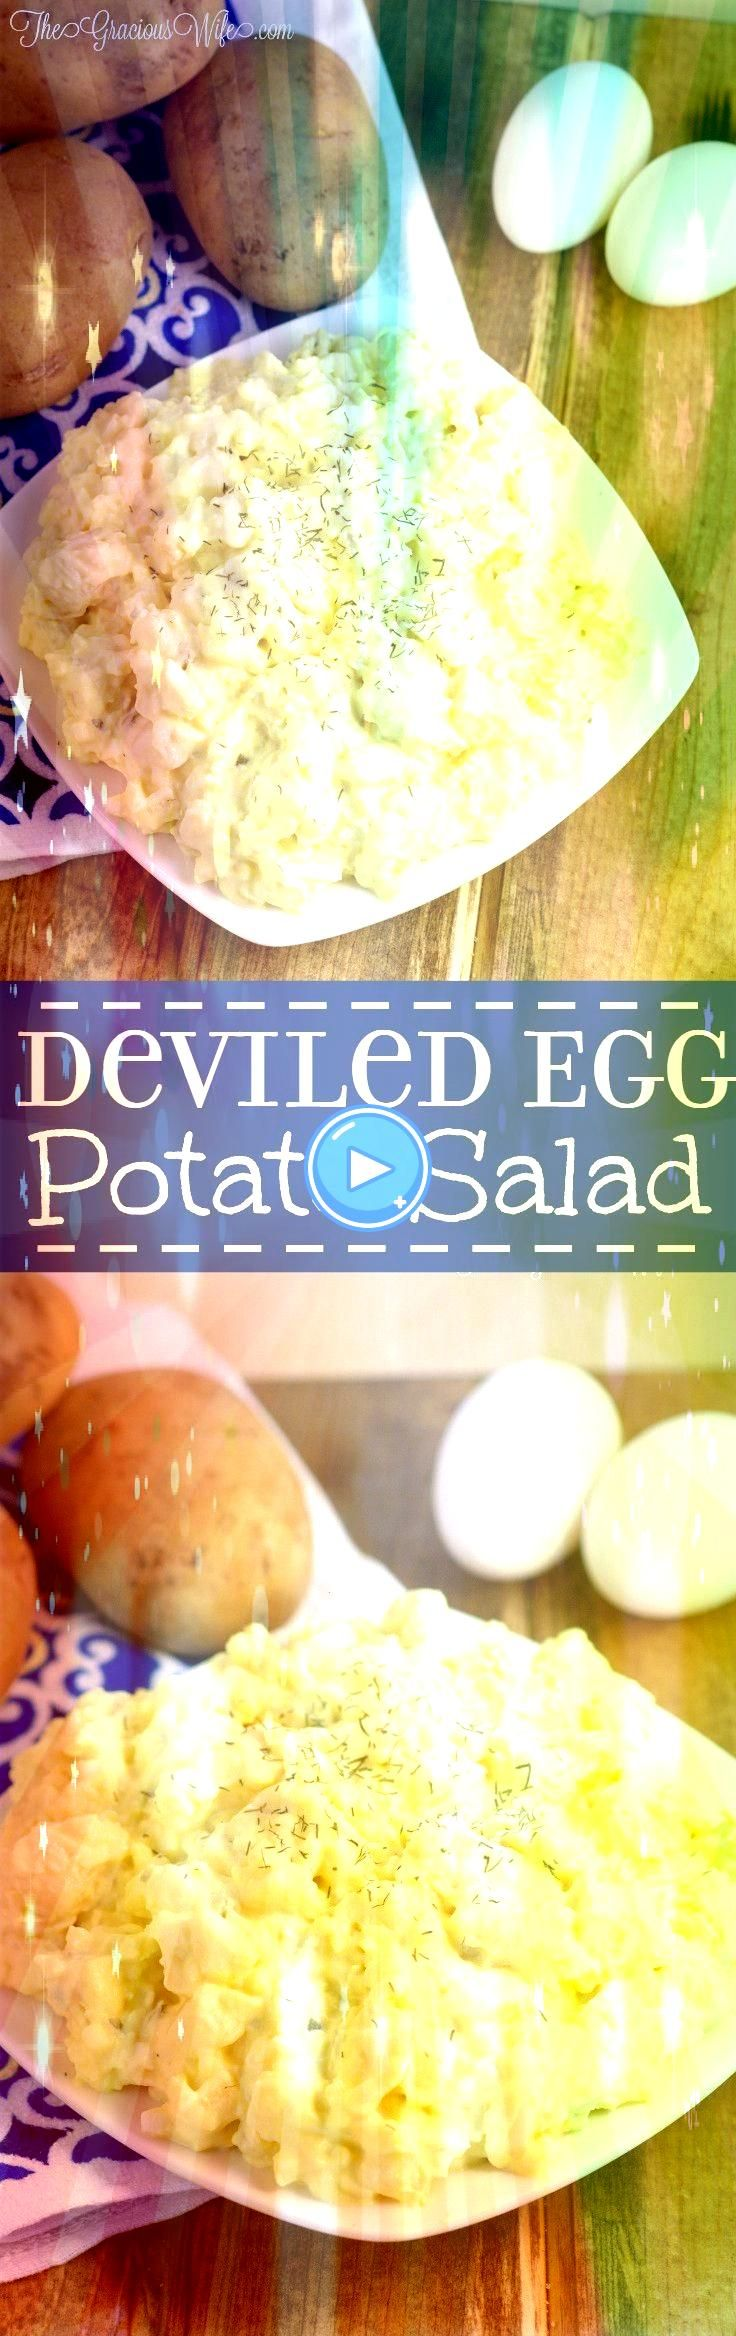 Egg Potato Salad Recipe  Easy potato salad side dish recipe inspired by Deviled Egg Potato Salad Recipe  Easy potato salad side dish recipe inspired by Old School Chicken...